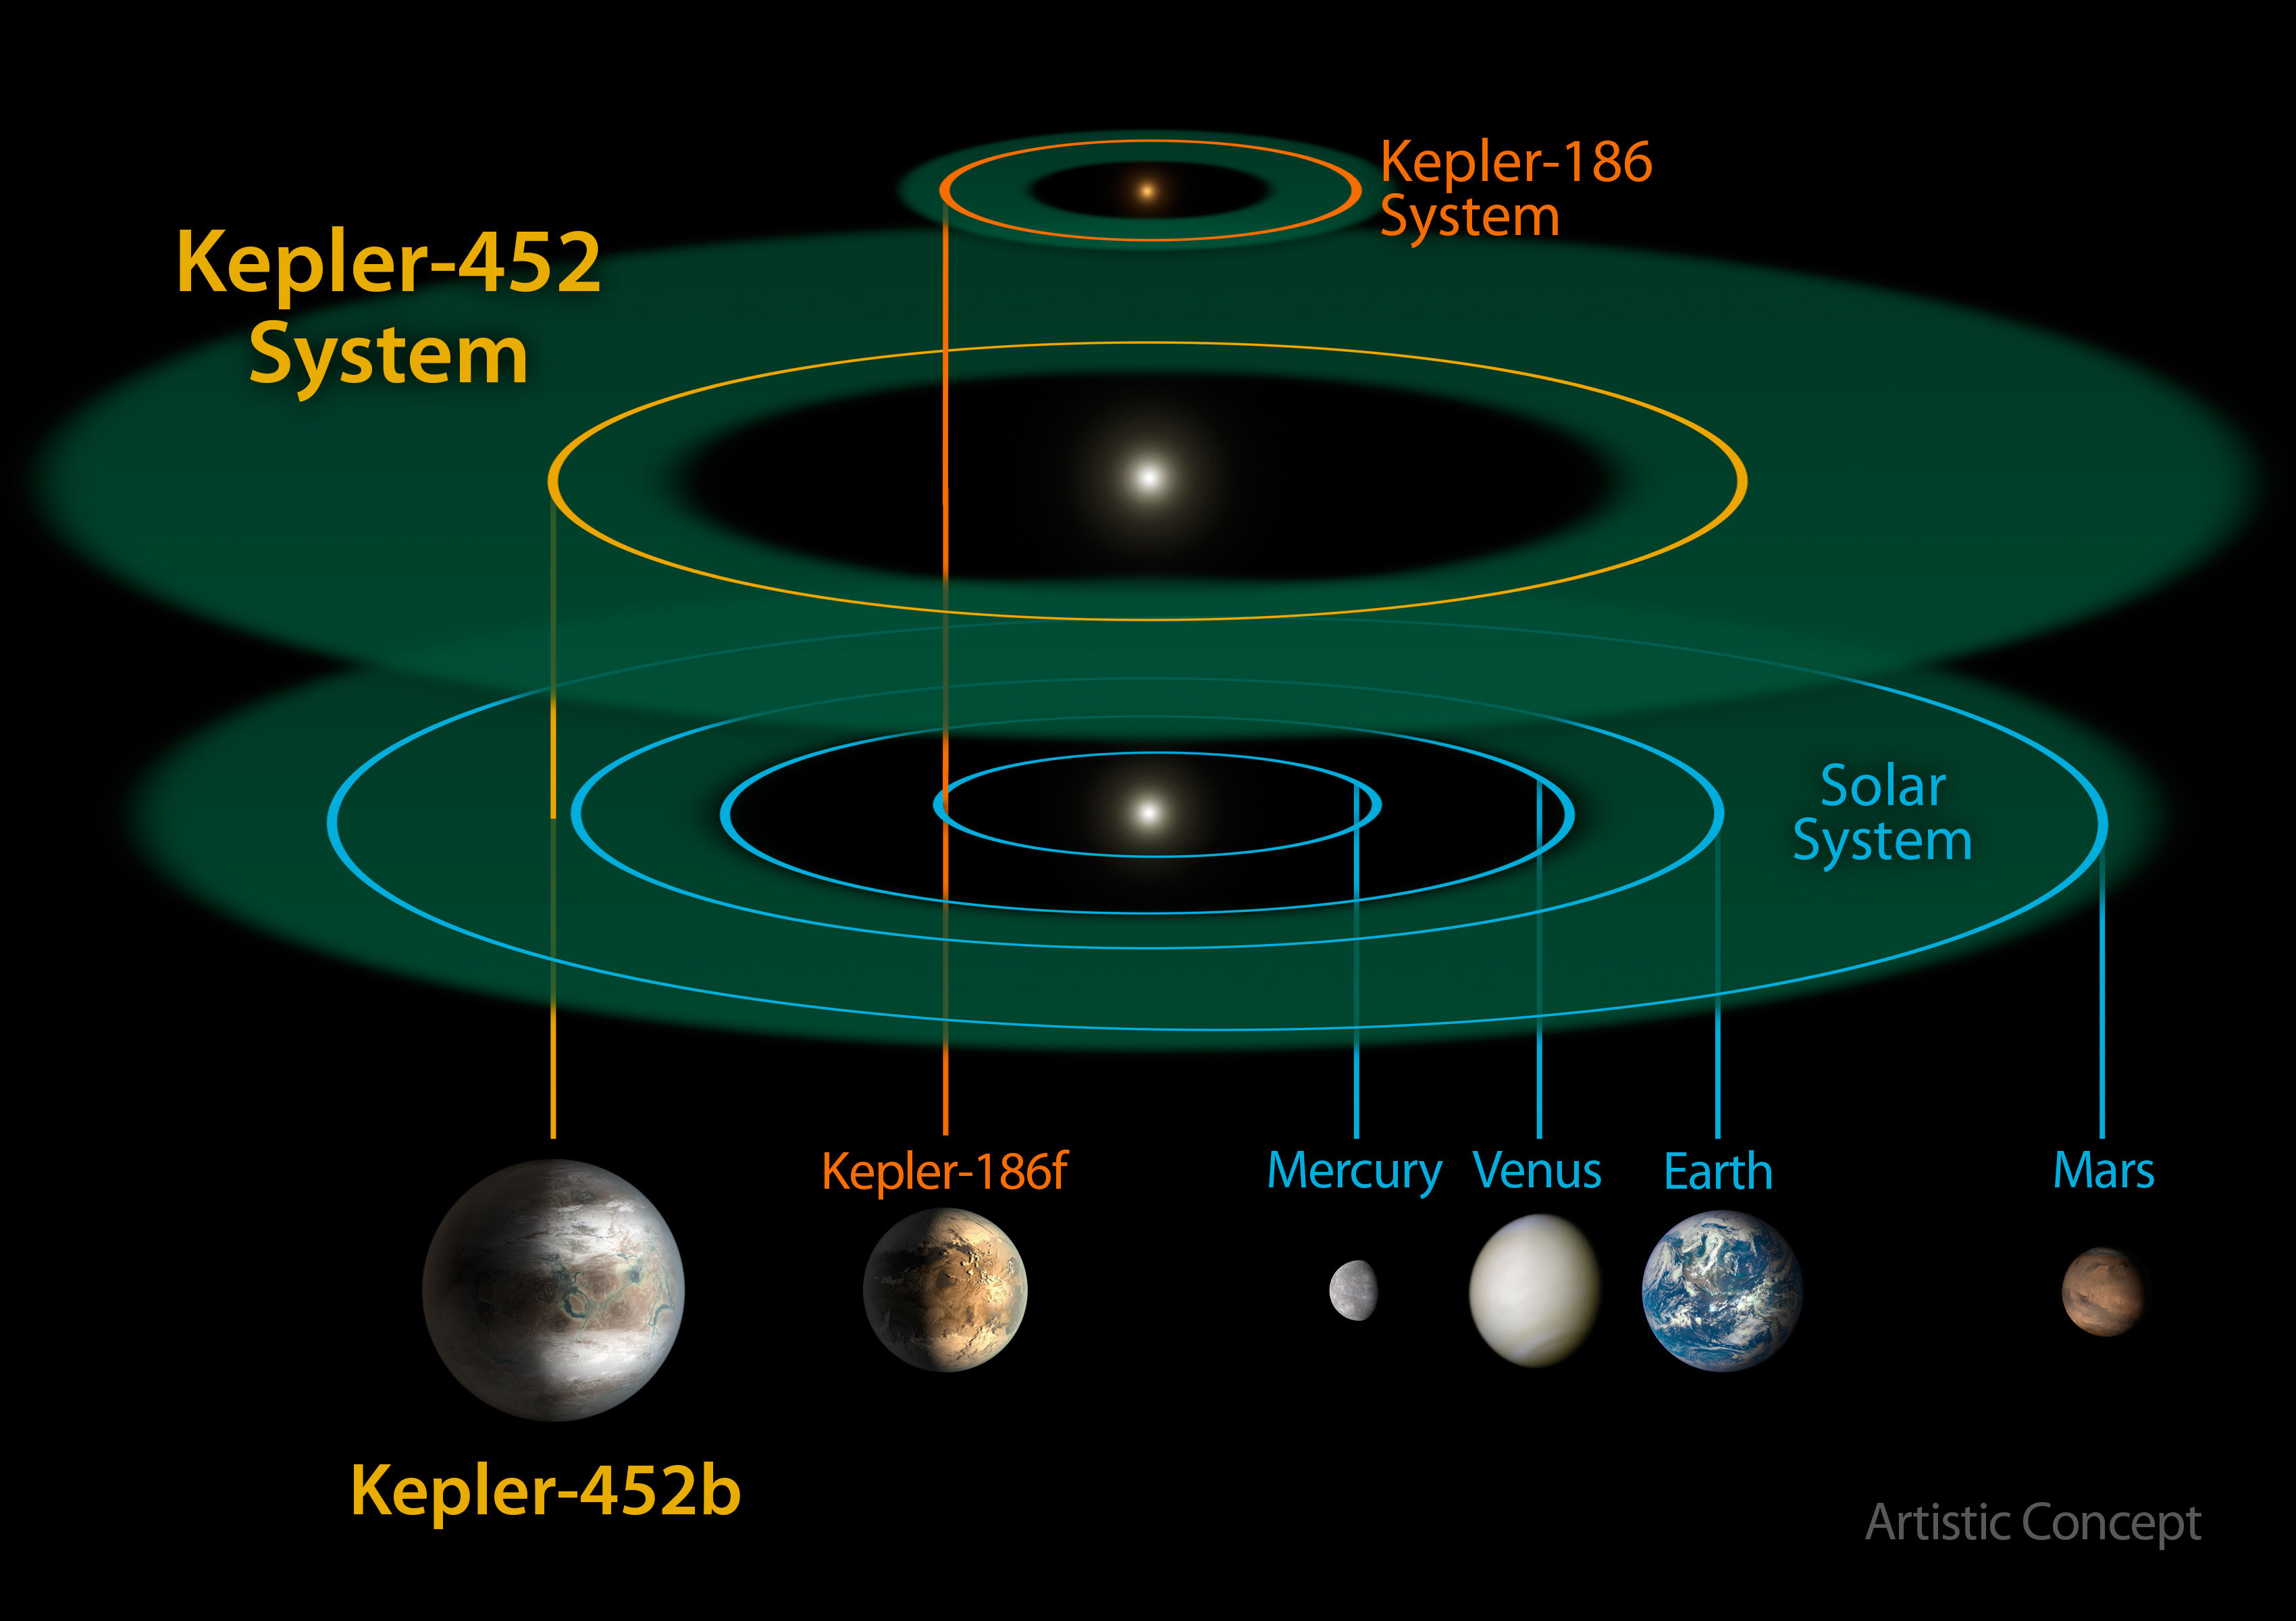 This size and scale of the Kepler-452 system compared alongside the Kepler-186 system and the solar system. Kepler-186 is a miniature solar system that would fit entirely inside the orbit of Mercury.